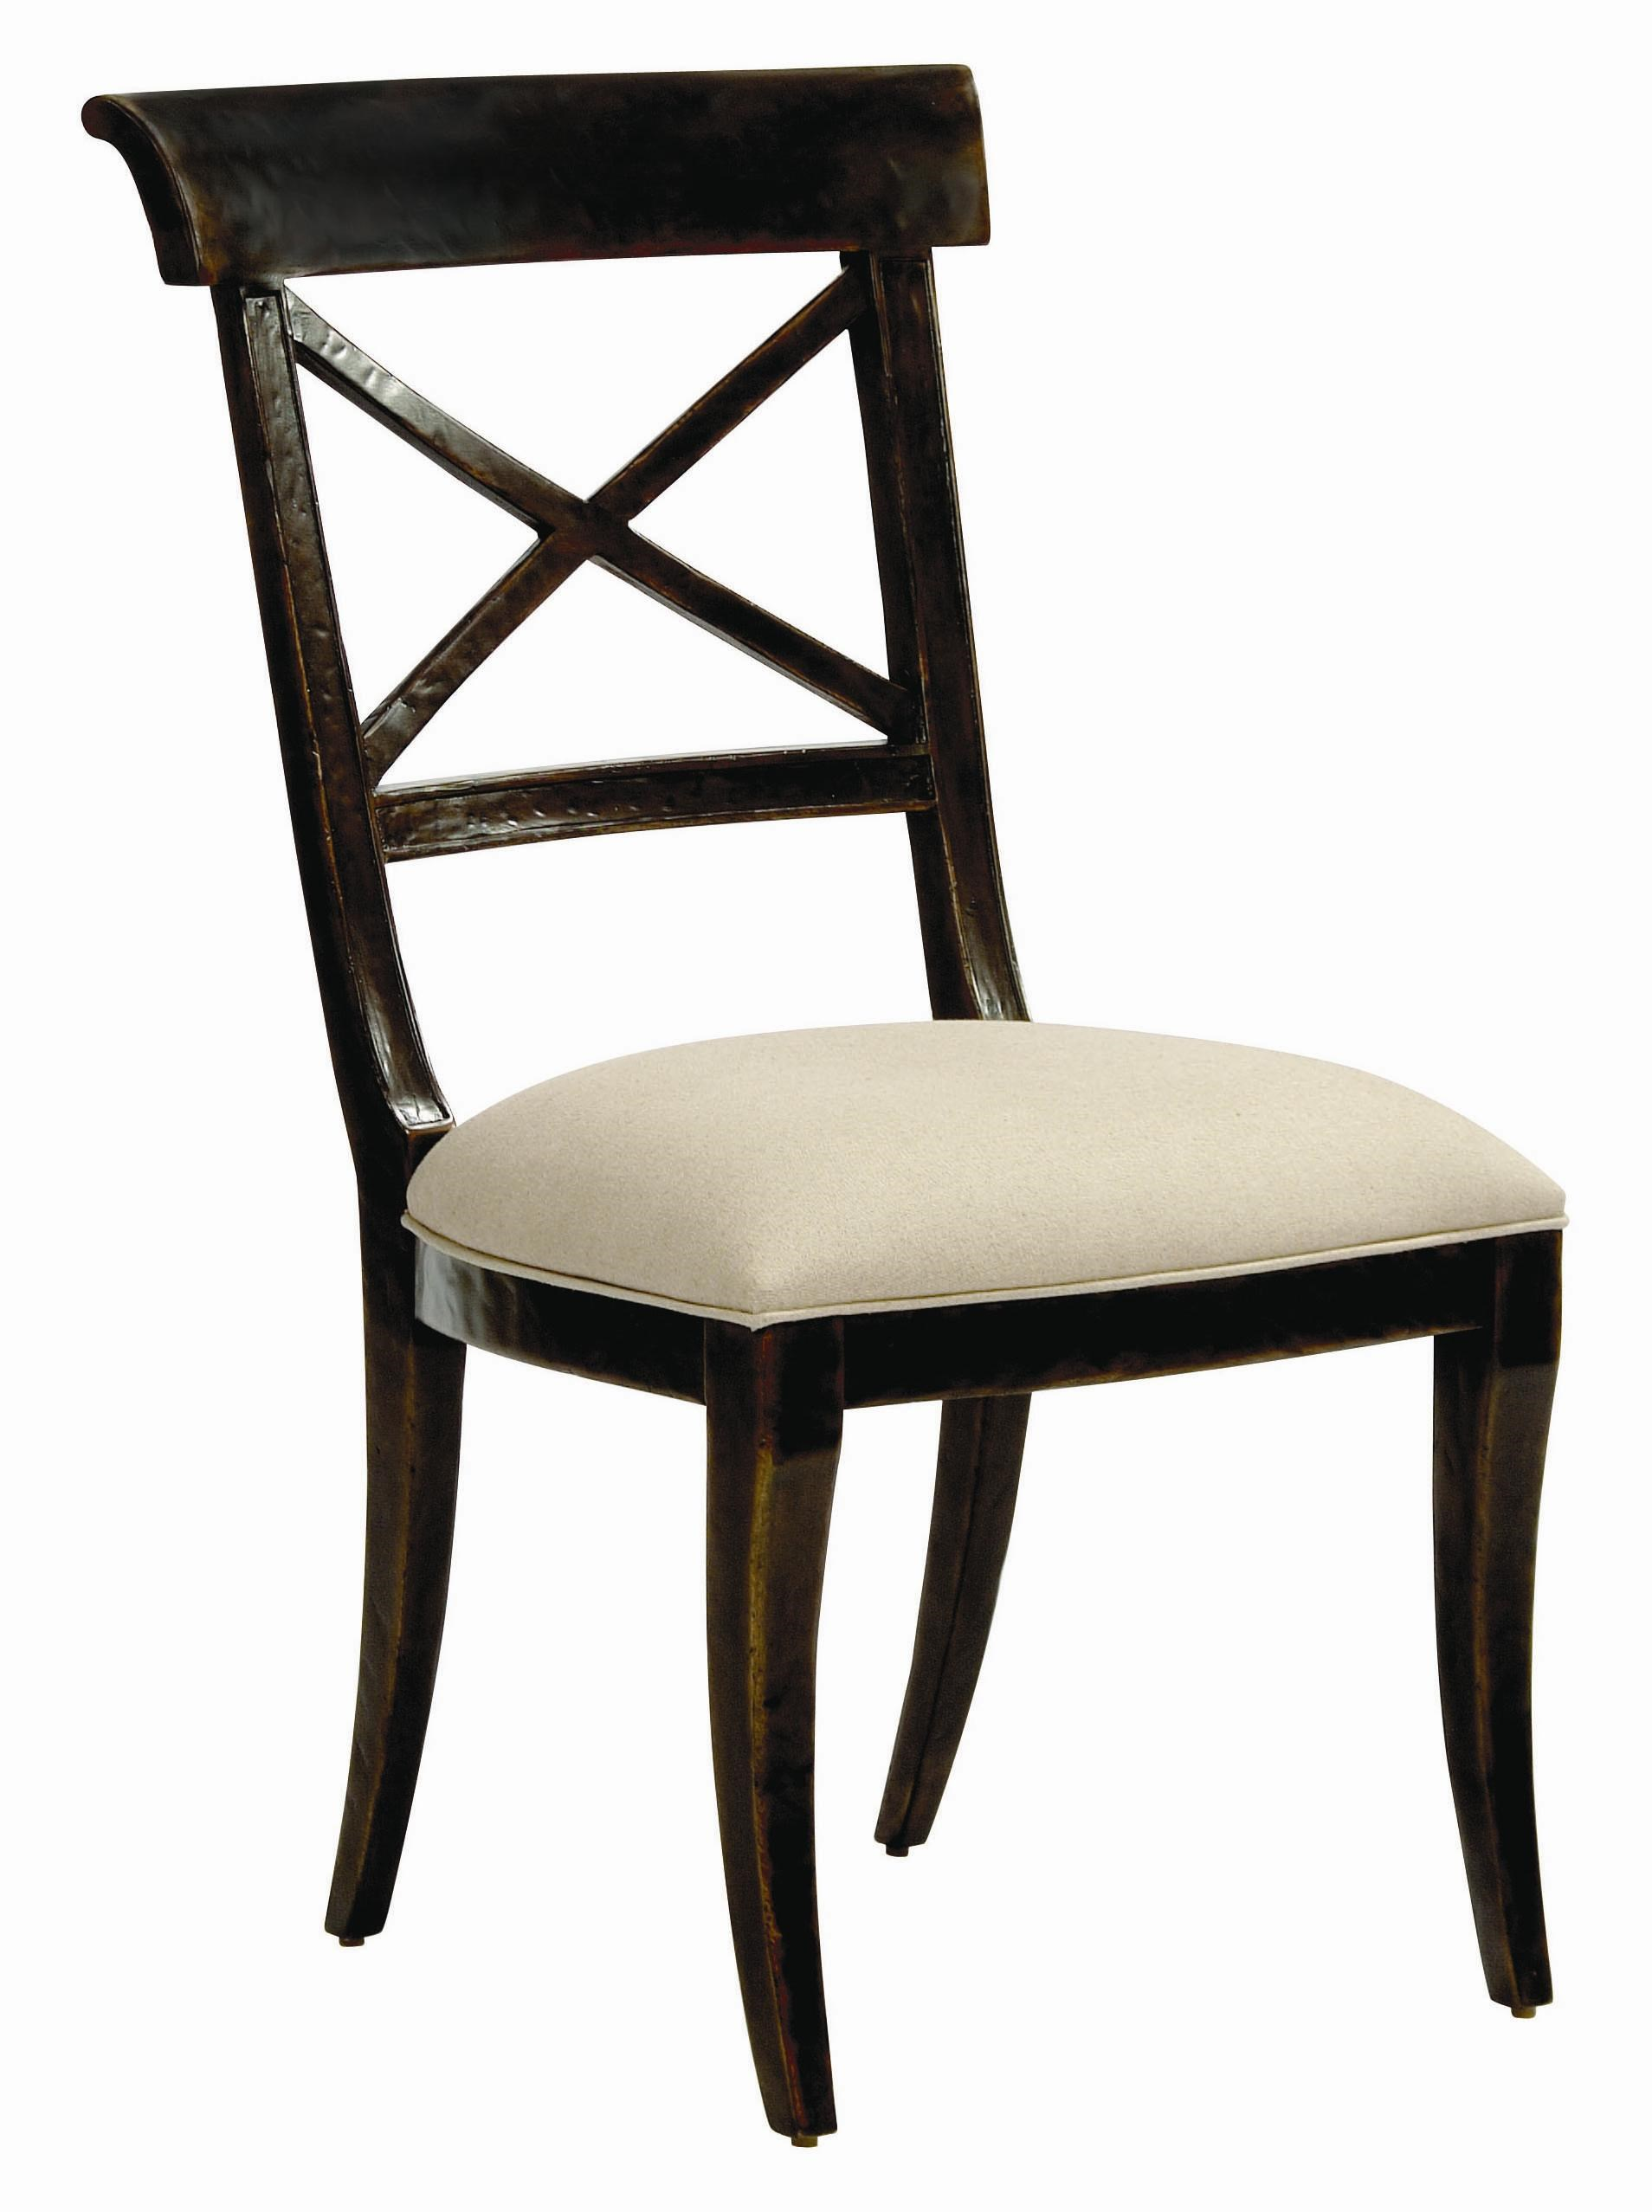 Bernhardt Vintage Patina Dining Room Side Chair with  : products2Fbernhardt2Fcolor2Fvintage20patina322 555b bjpgscalebothampwidth500ampheight500ampfsharpen25ampdown from www.designinteriorsfurniture.com size 500 x 500 jpeg 25kB